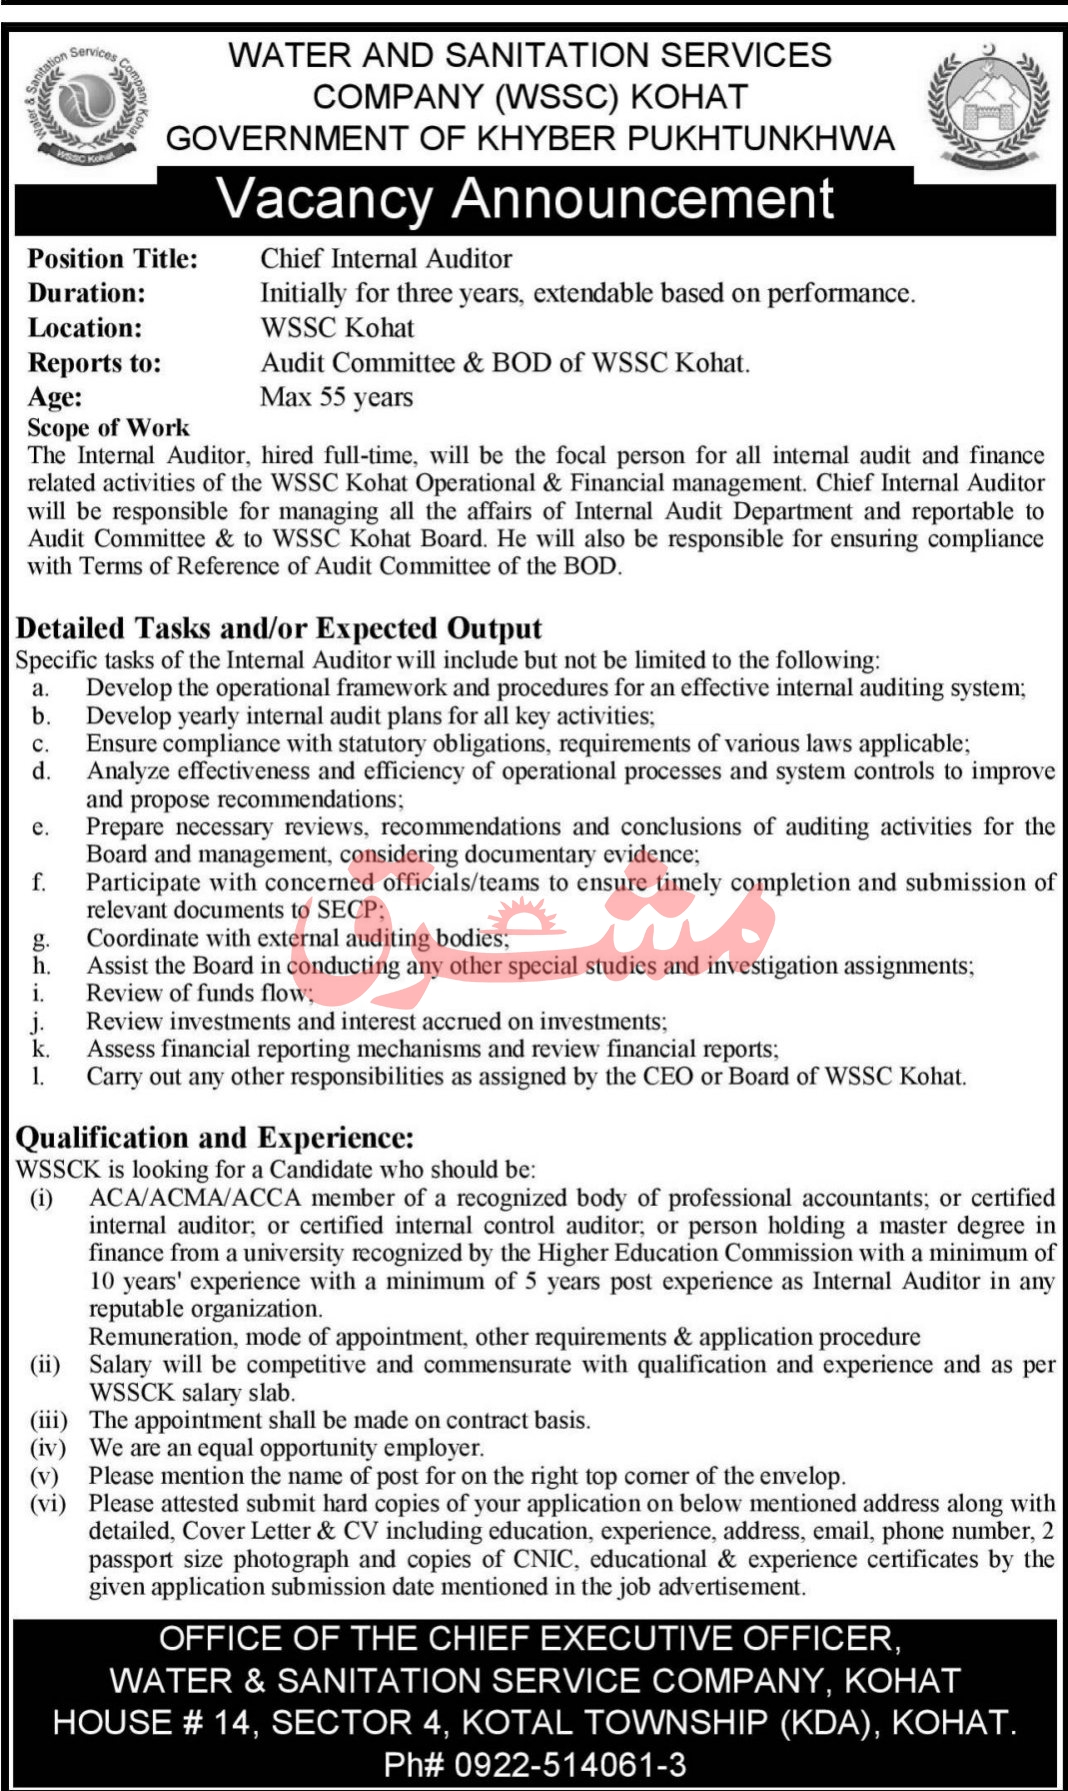 Water and Sanitation Services Company (WSSC) Jobs October 2020